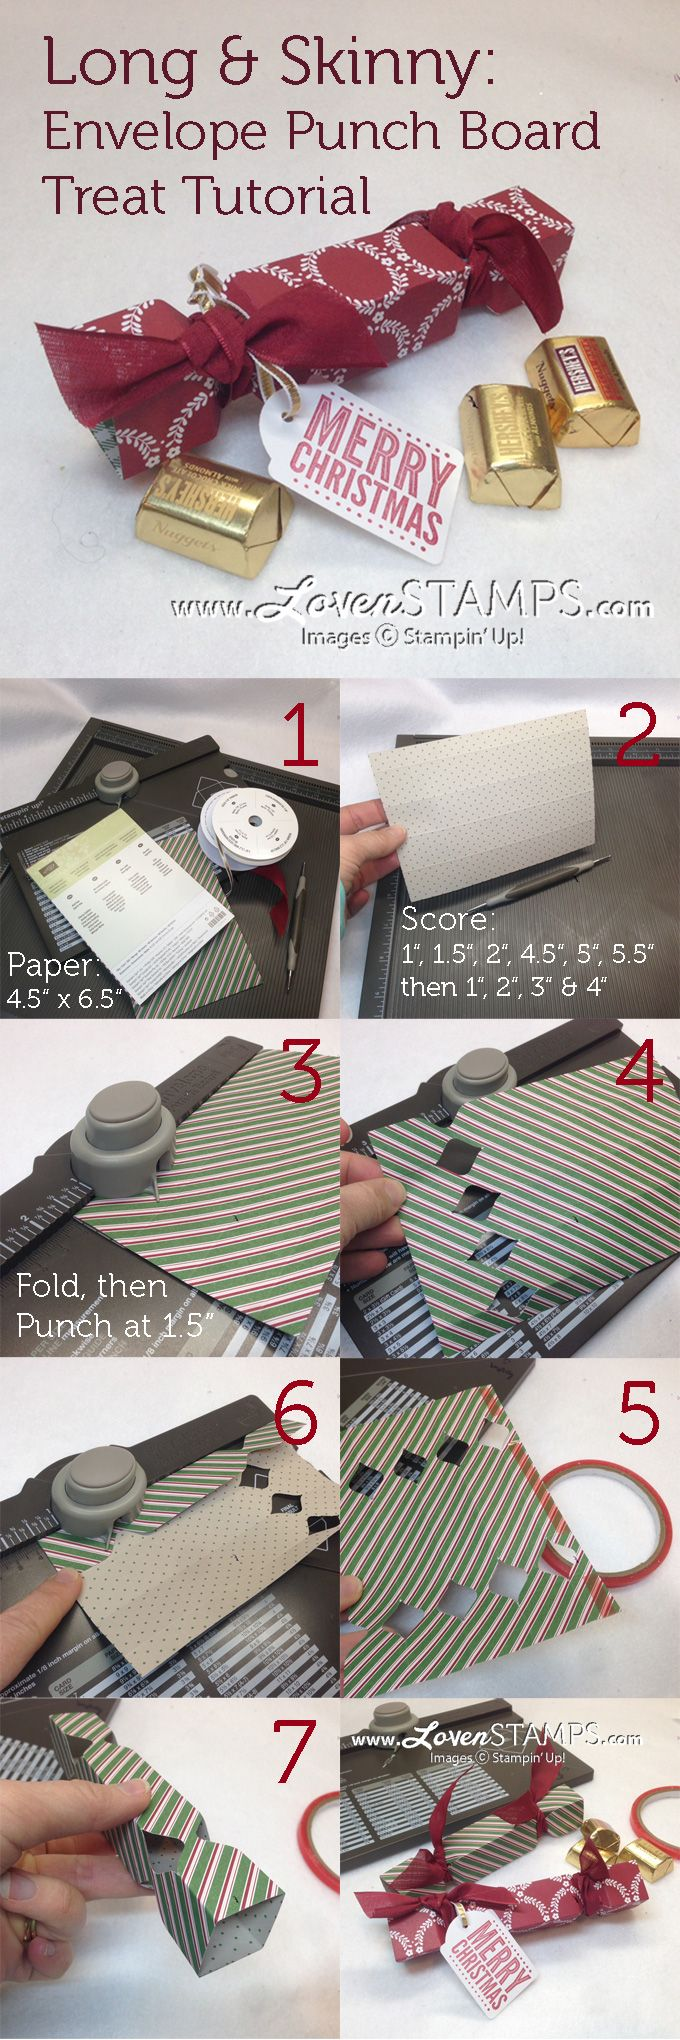 Envelope Punch Board Tutorial - Make Your Own Long, Skinny Treat Boxes! Project by LovenStamps                                                                                                                                                                                 Más